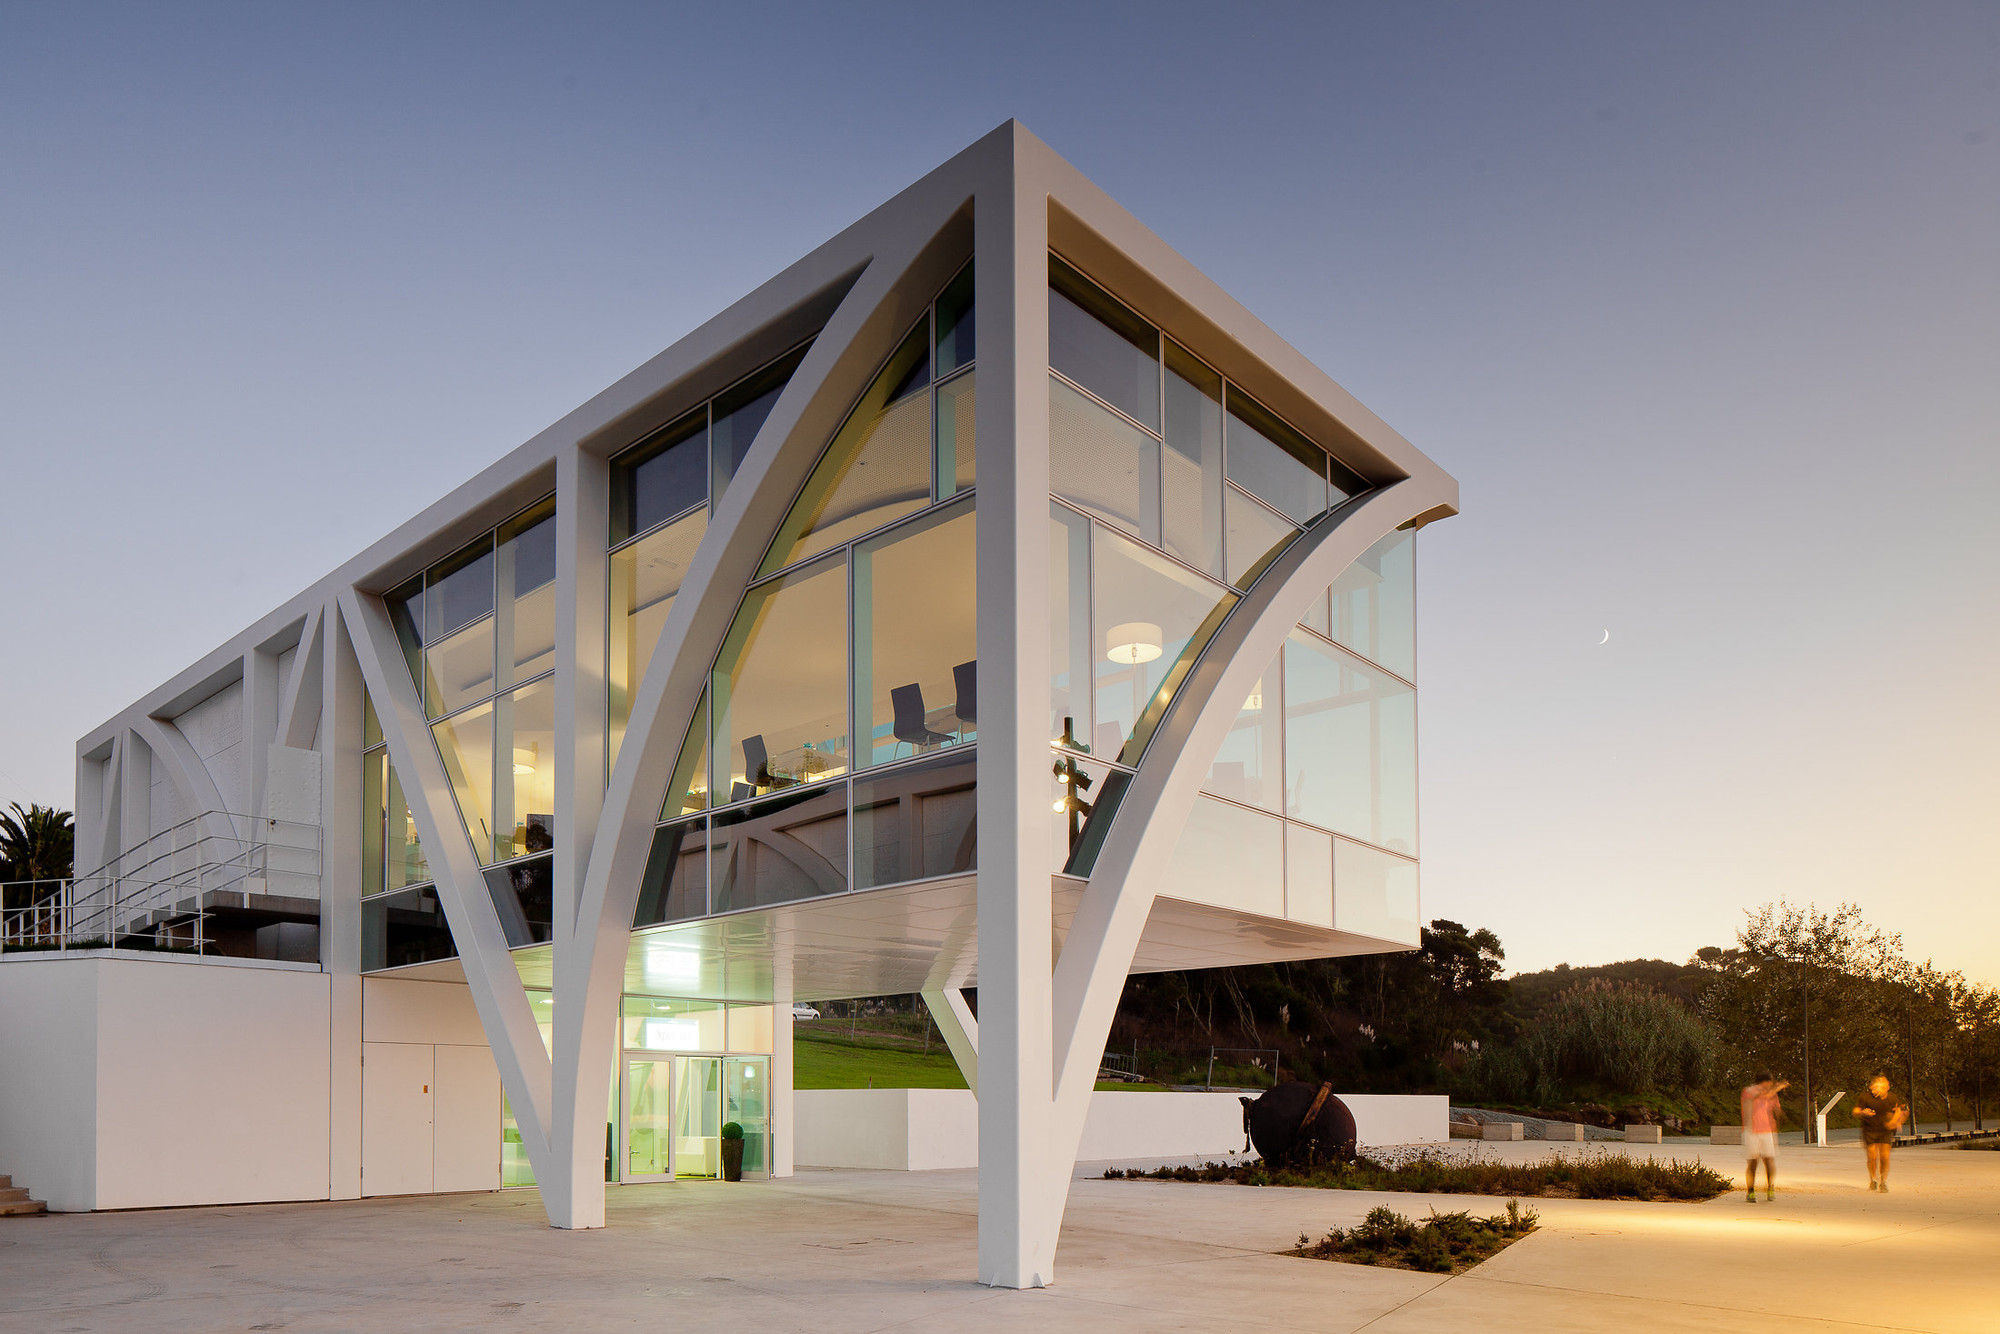 Marina douro barbosa guimaraes architects archdaily - Architecture of a building ...